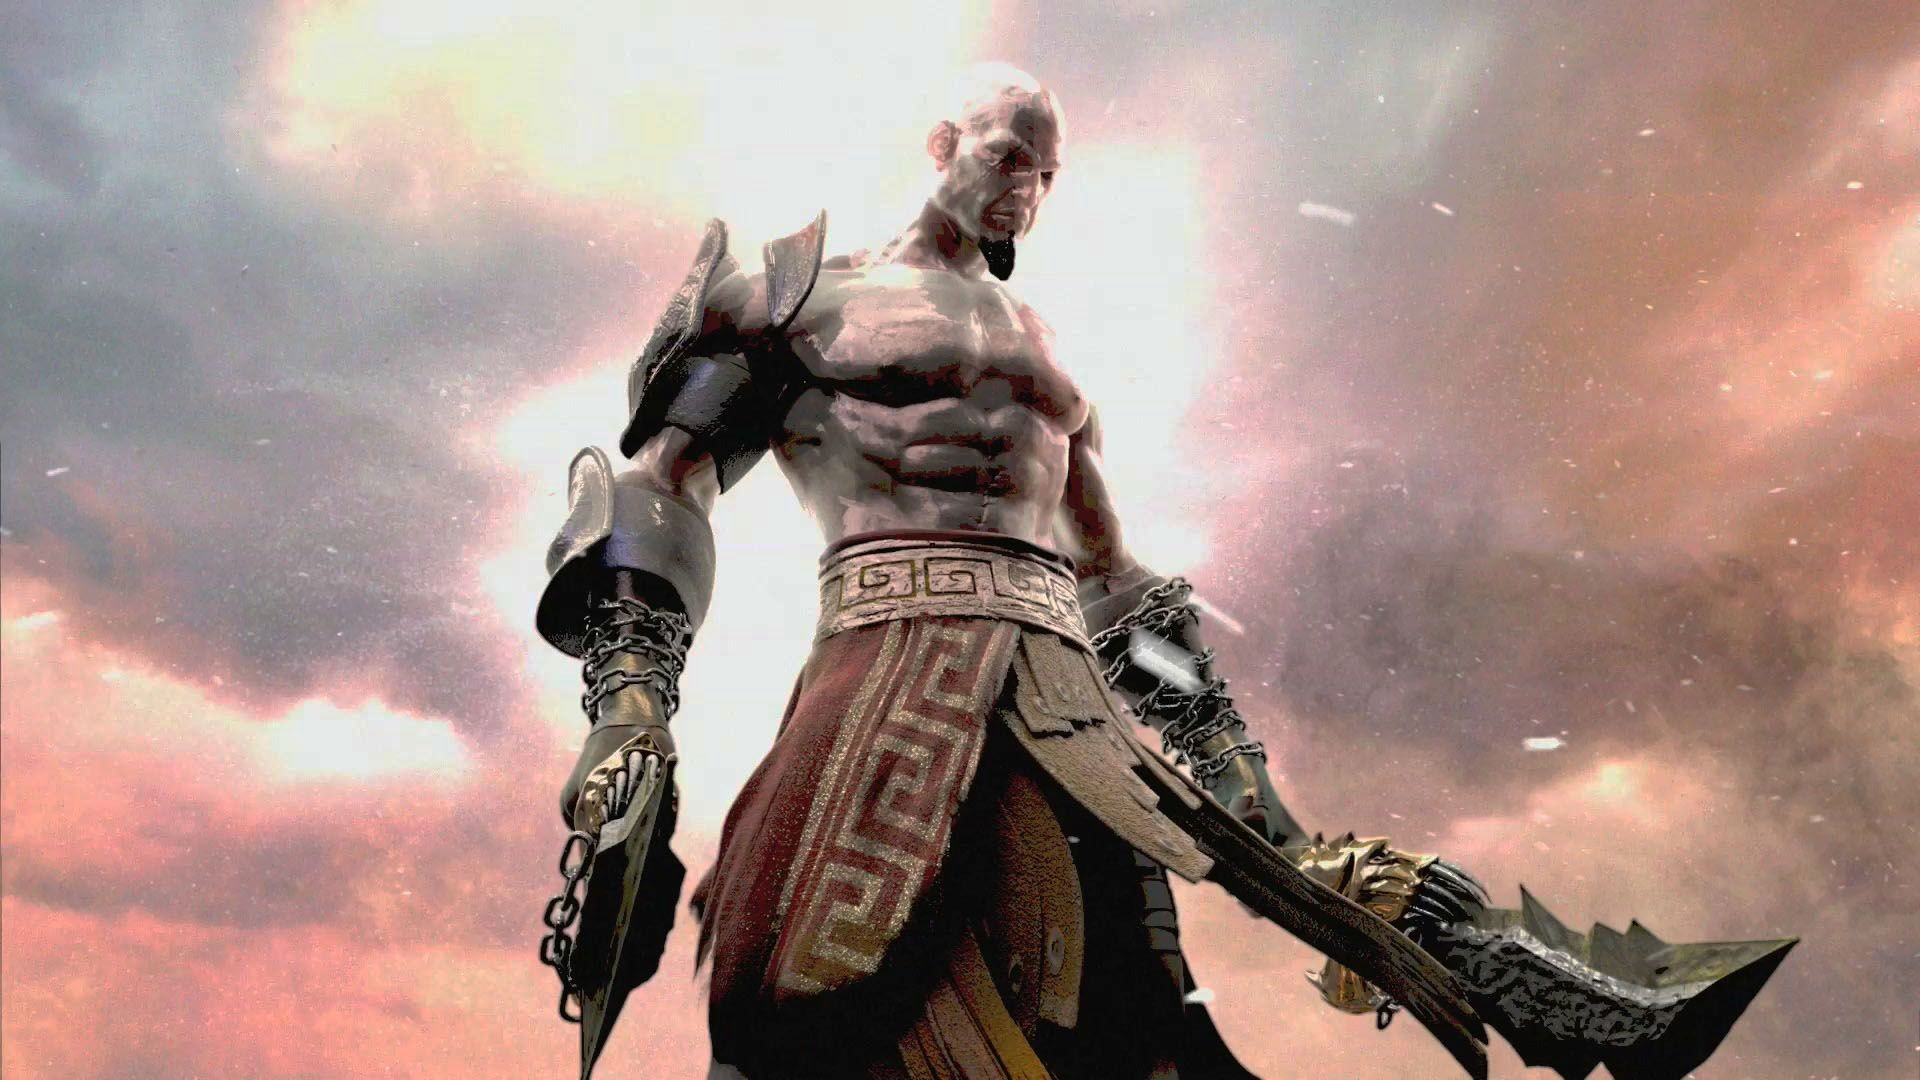 God of war wallpaper 82 images - 4k wallpaper of god ...